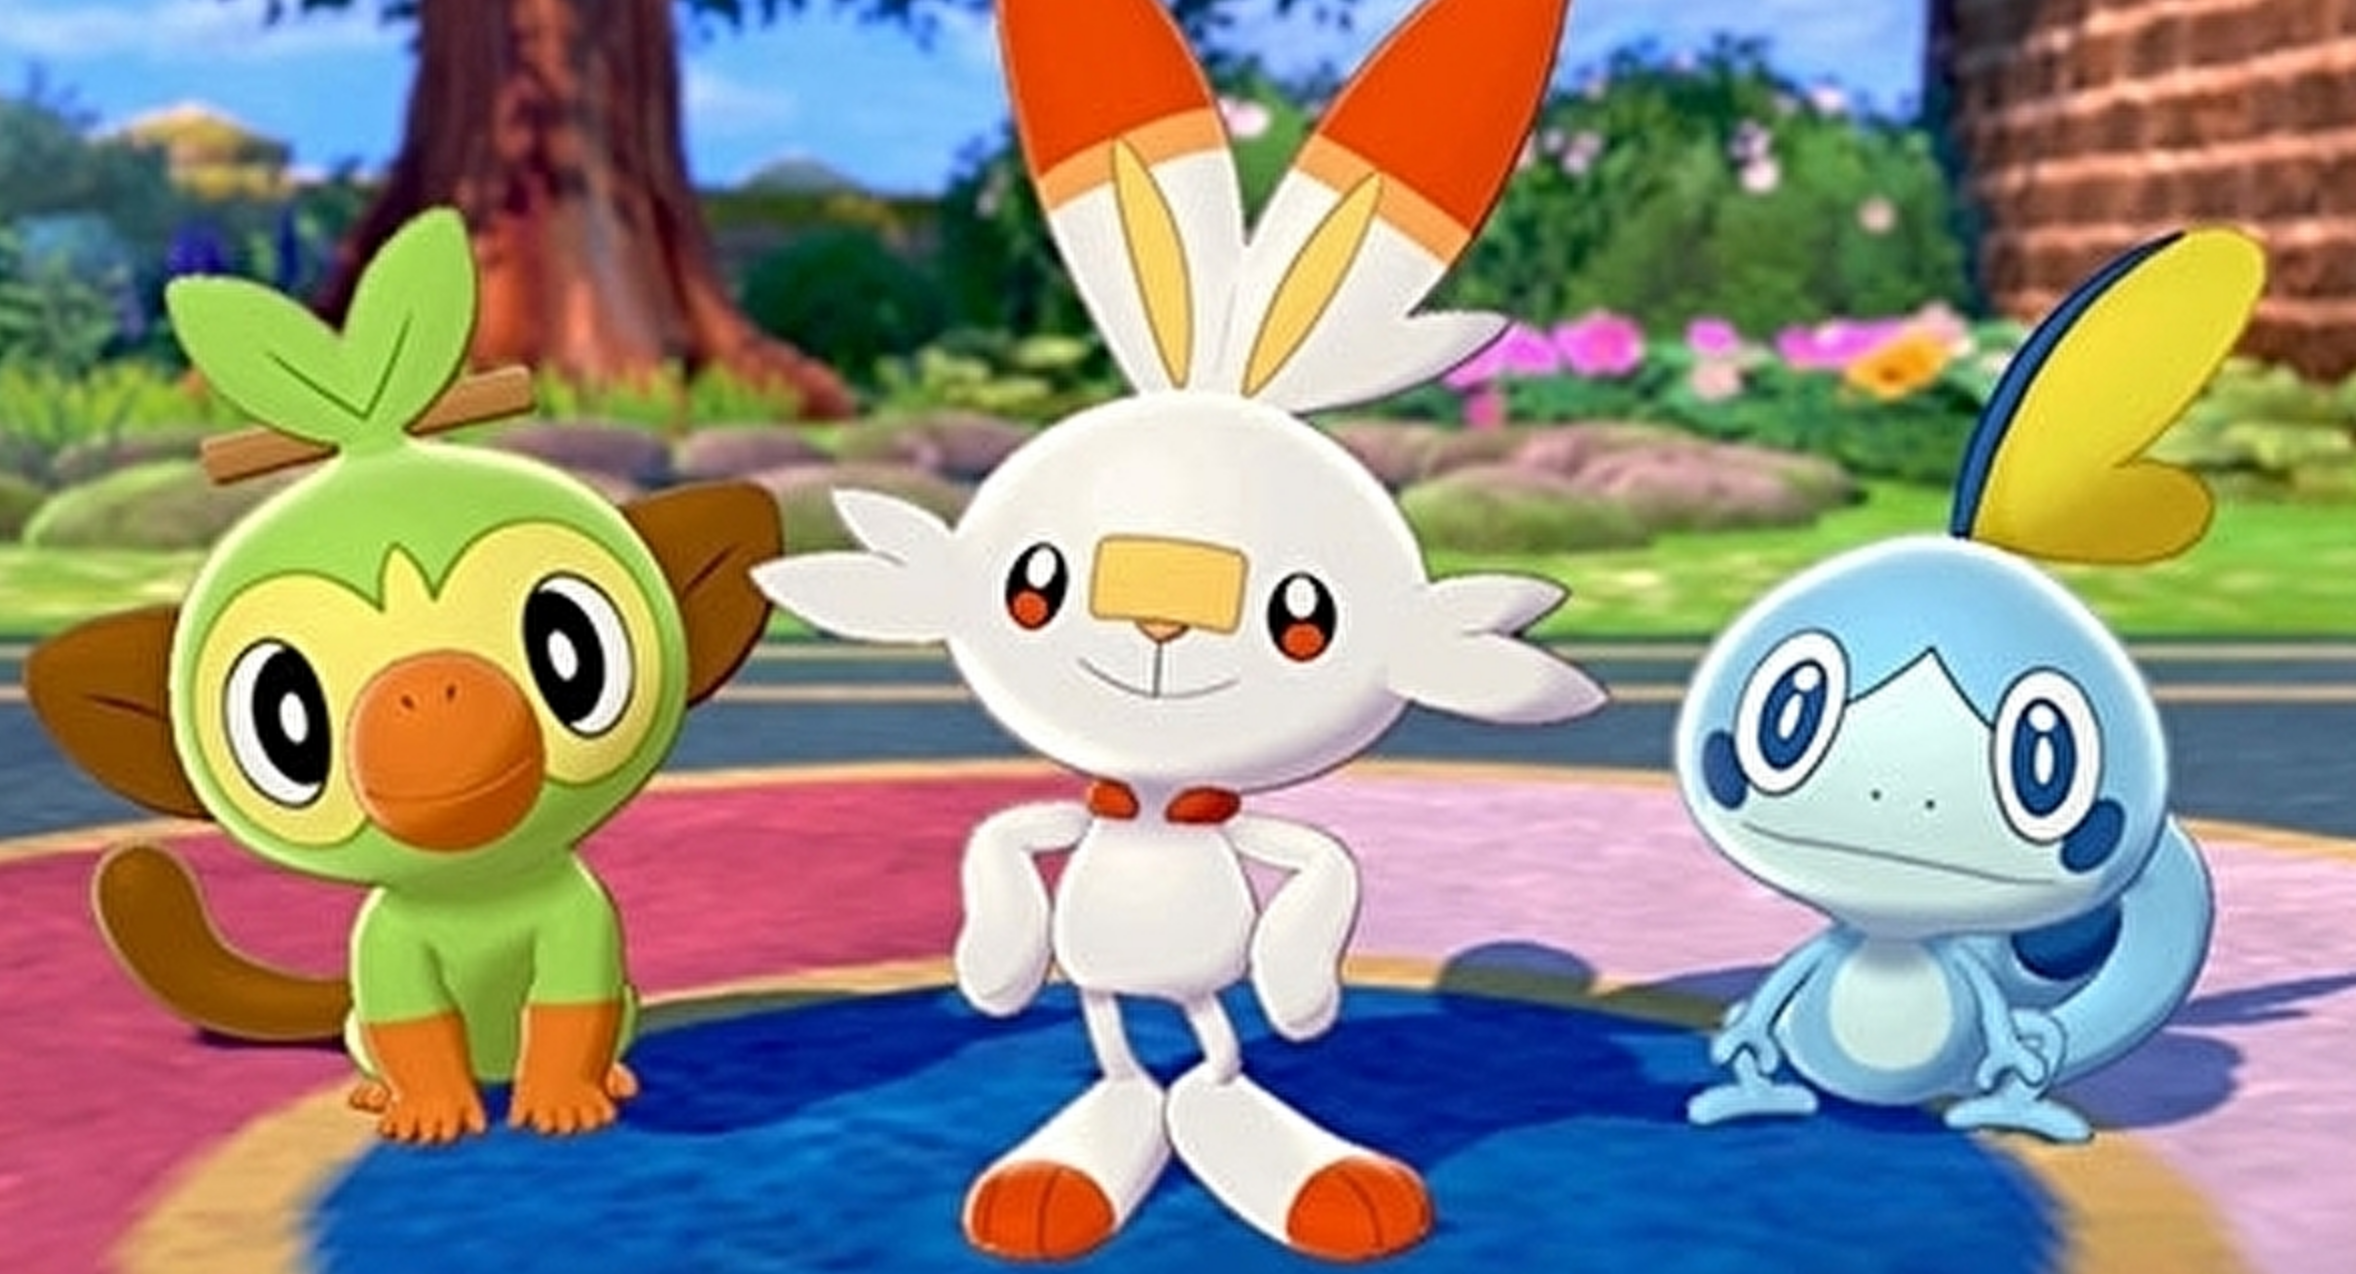 UK Charts: Pokémon Sword and Shield post huge opening weekend sales